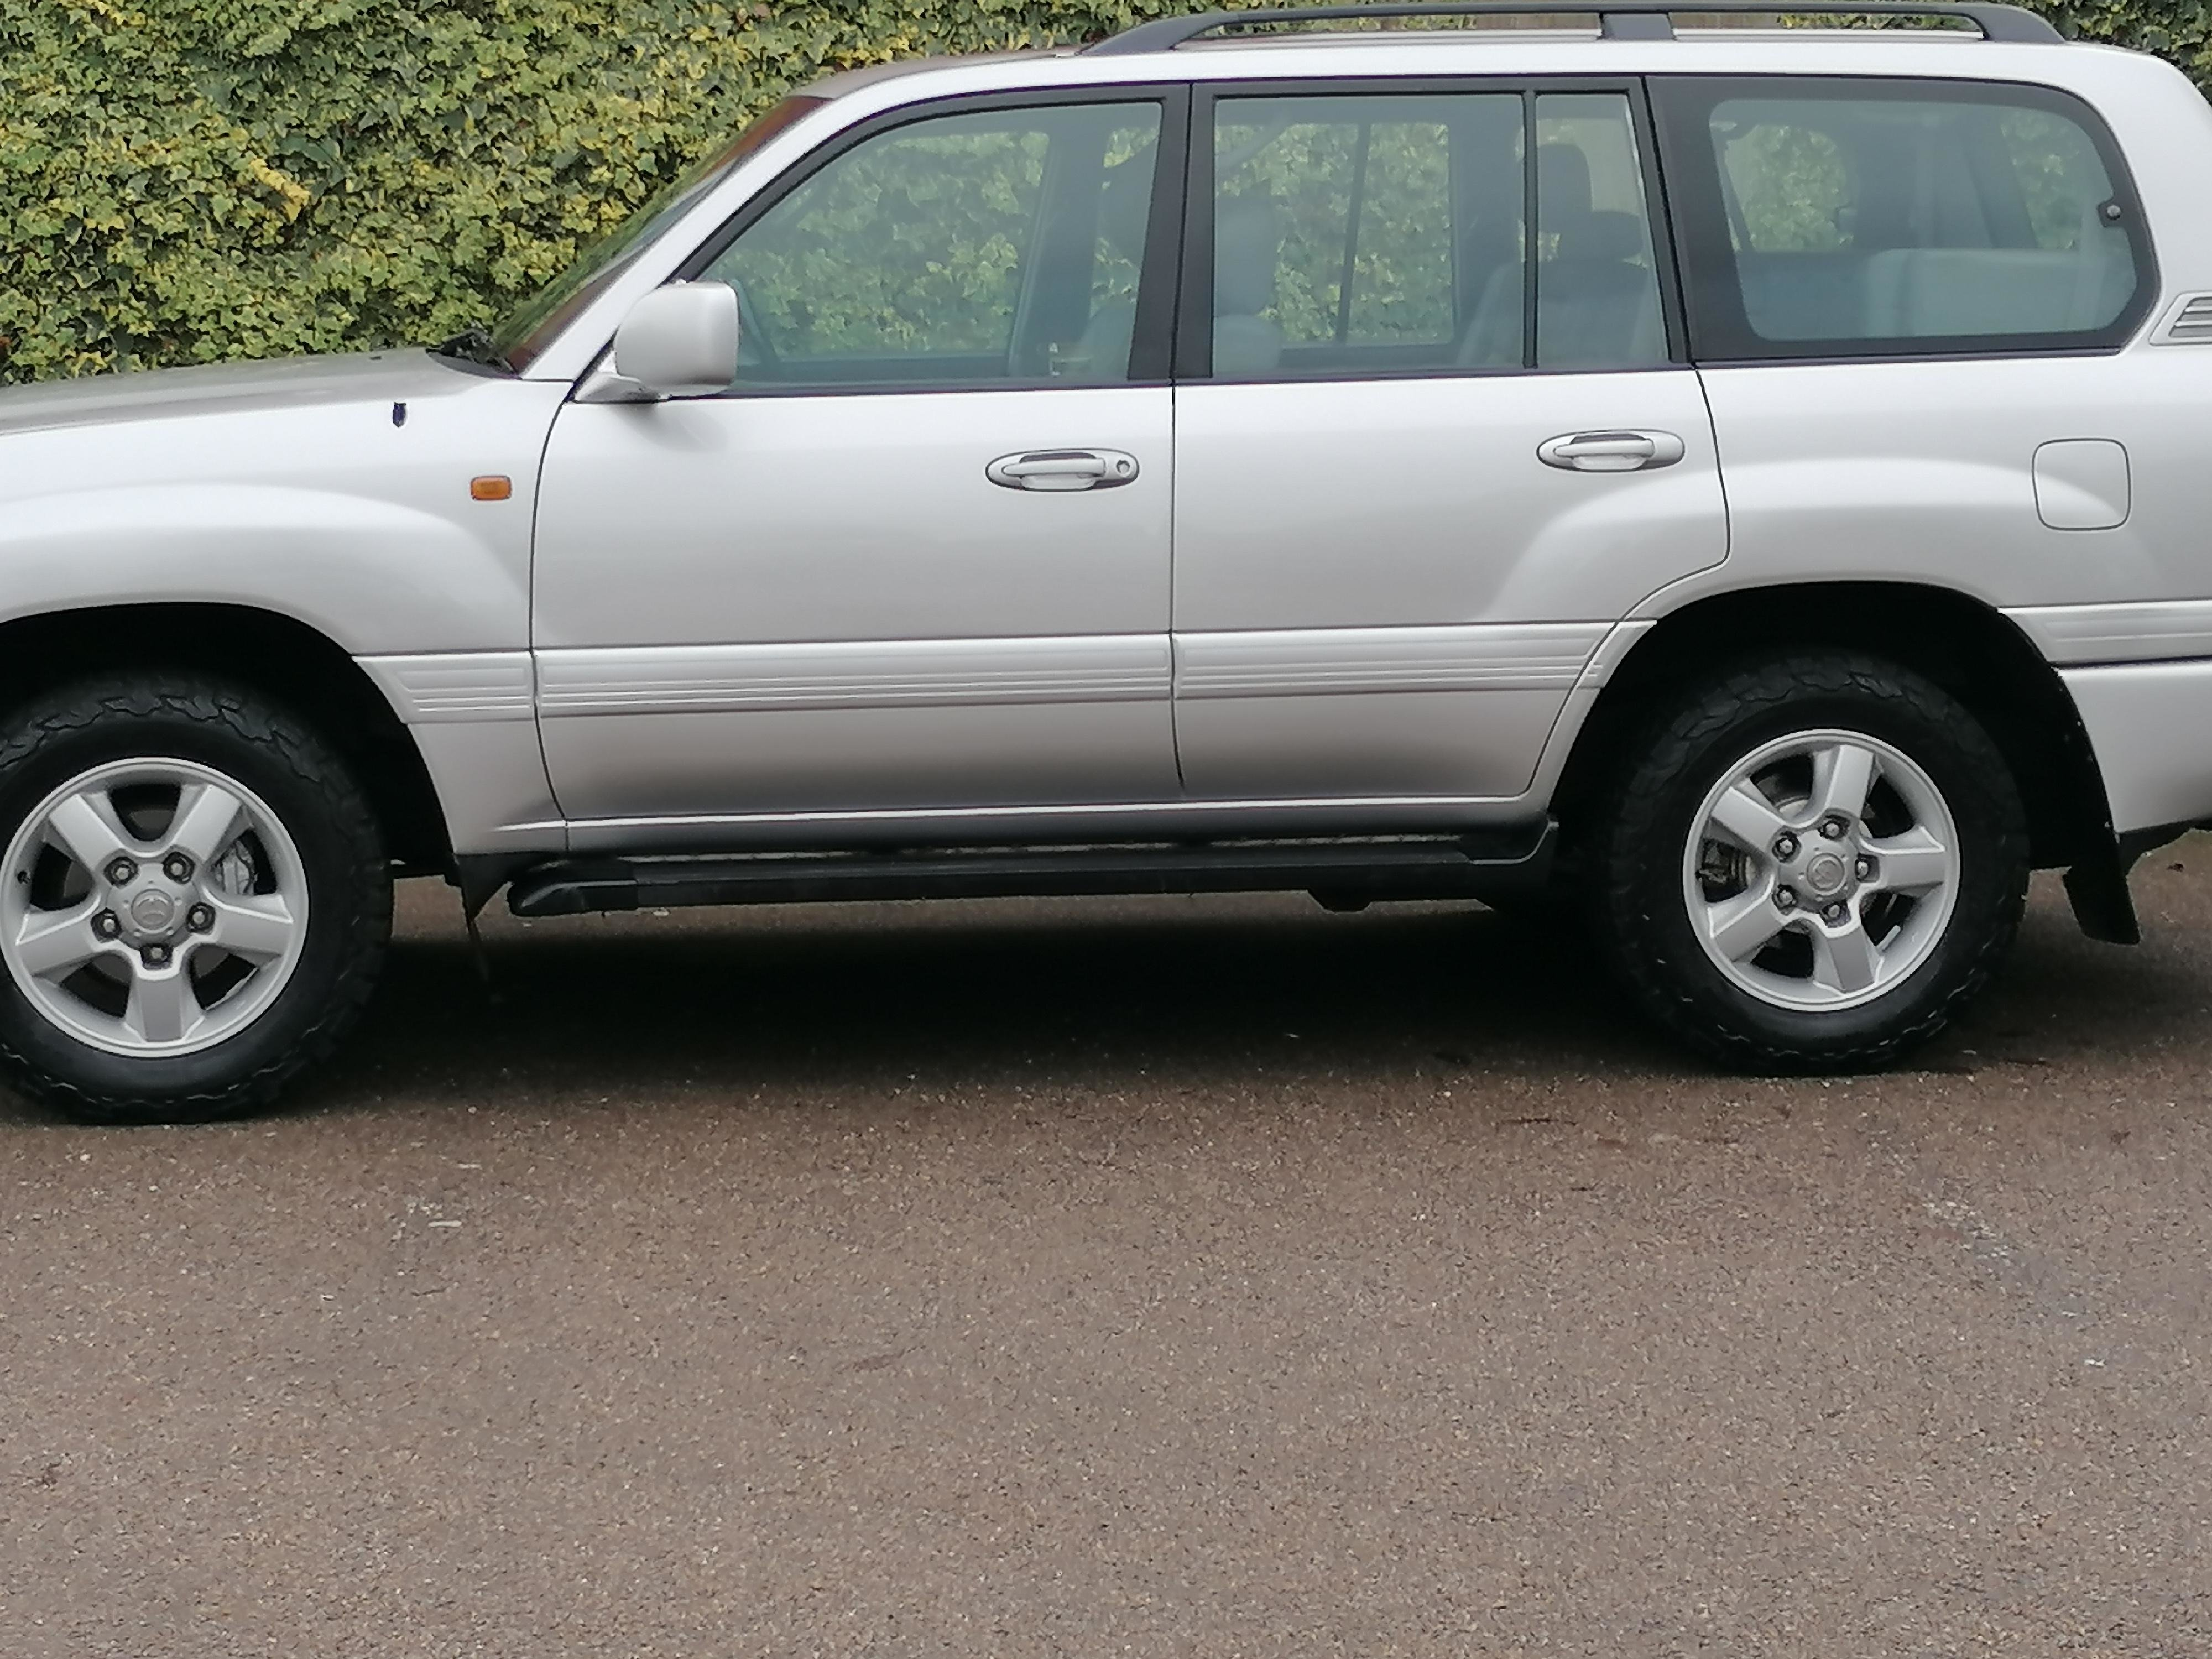 Picture of 2005 05/55Toyota Landcruiser Amazon 4.2 TD VX Manual For Sale